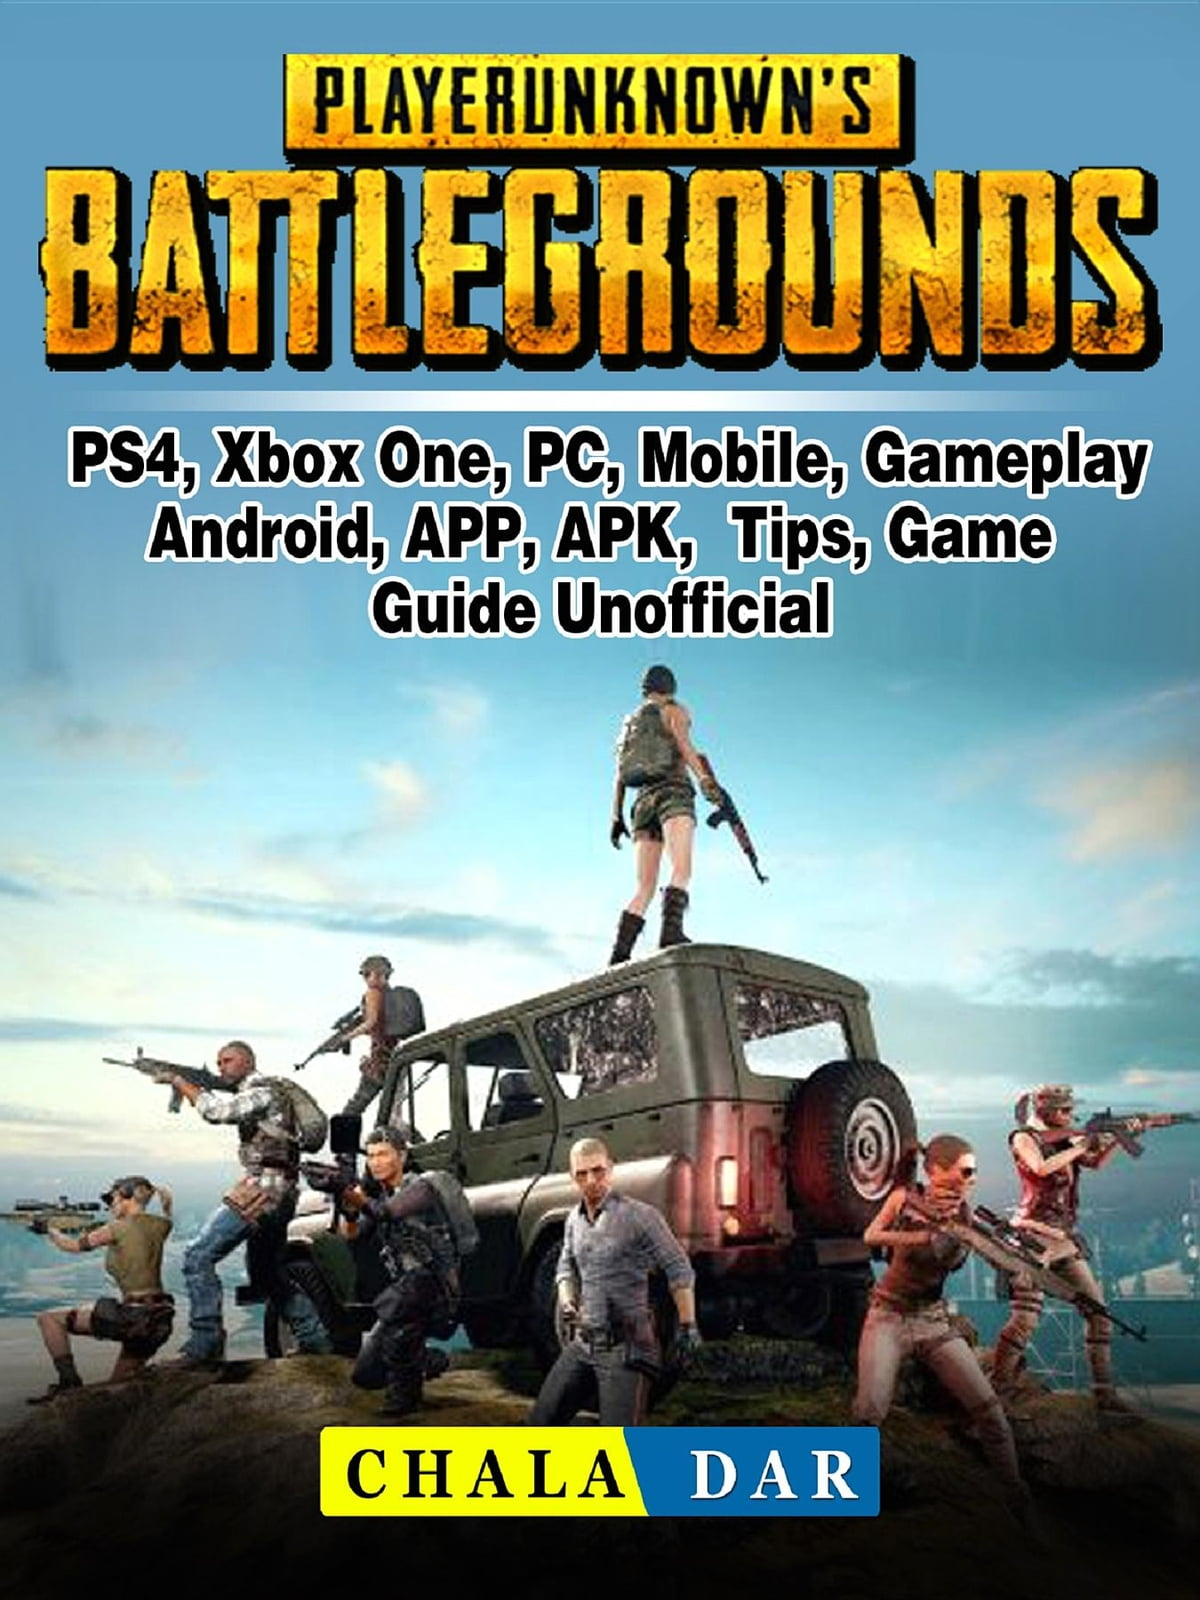 Player Unknowns Battlegrounds, PS4, Xbox One, PC, Mobile, Gameplay,  Android, APP, APK, Tips, Game Guide Unofficial ekitaplar by Chala Dar -  Rakuten